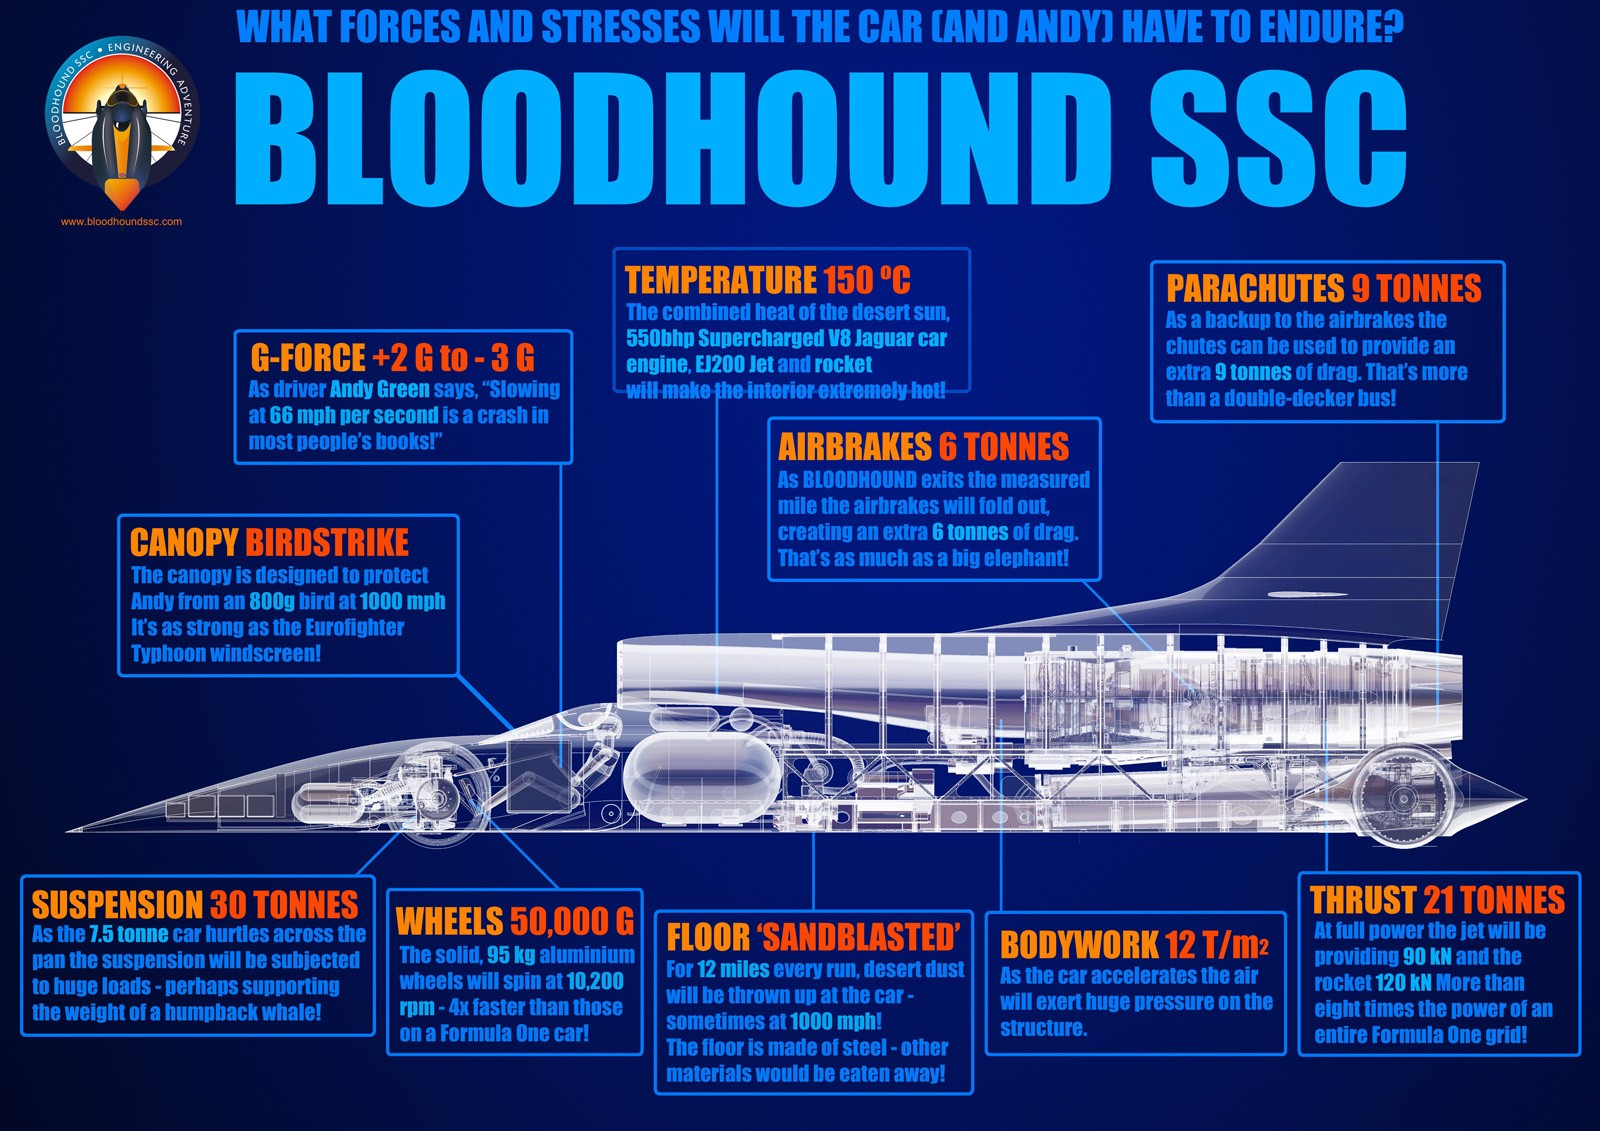 Bloodhound Ssc Land Speed Record Braking Car Set To Make